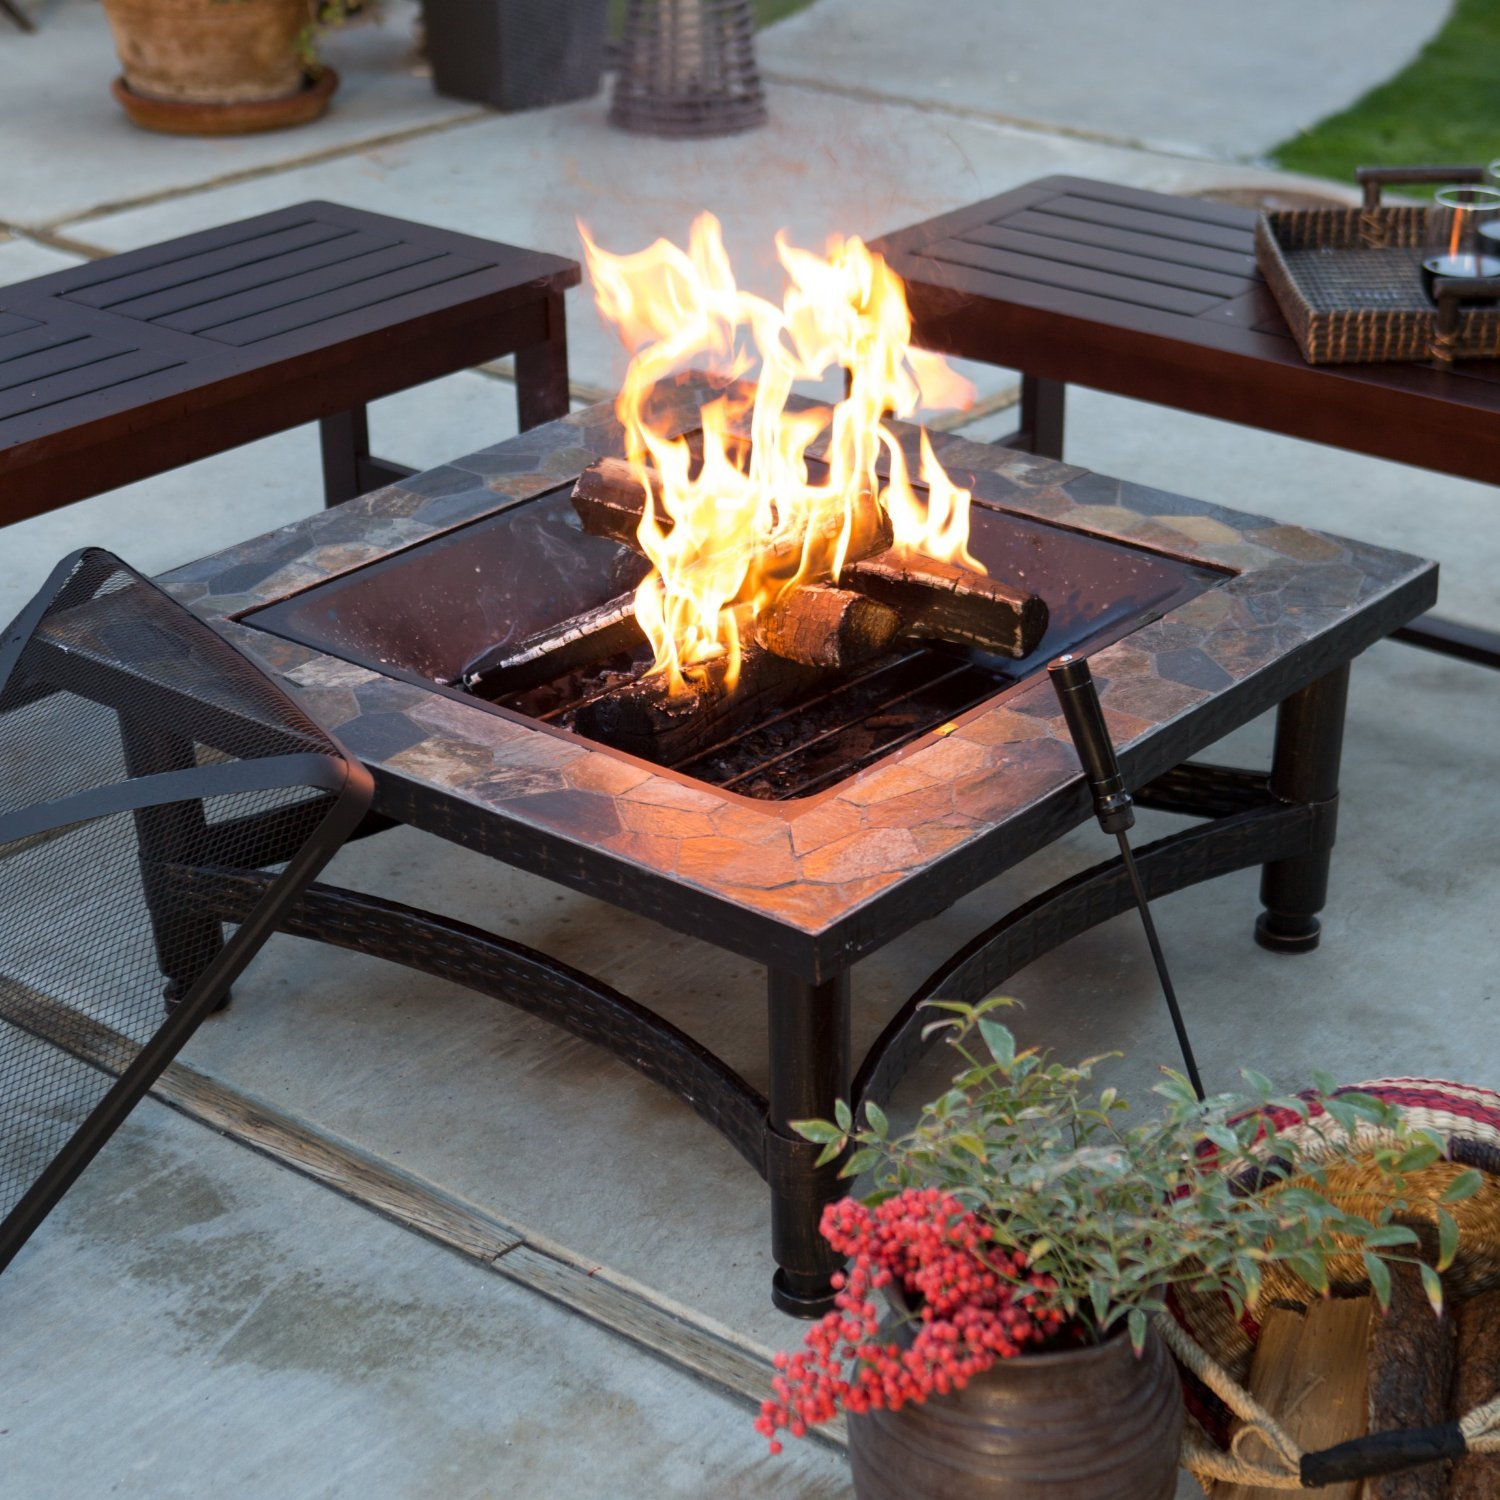 Backyard Patios With Fire Pits: Outdoor Fire Pit 34-in. Square Slate Black Steel Bowl